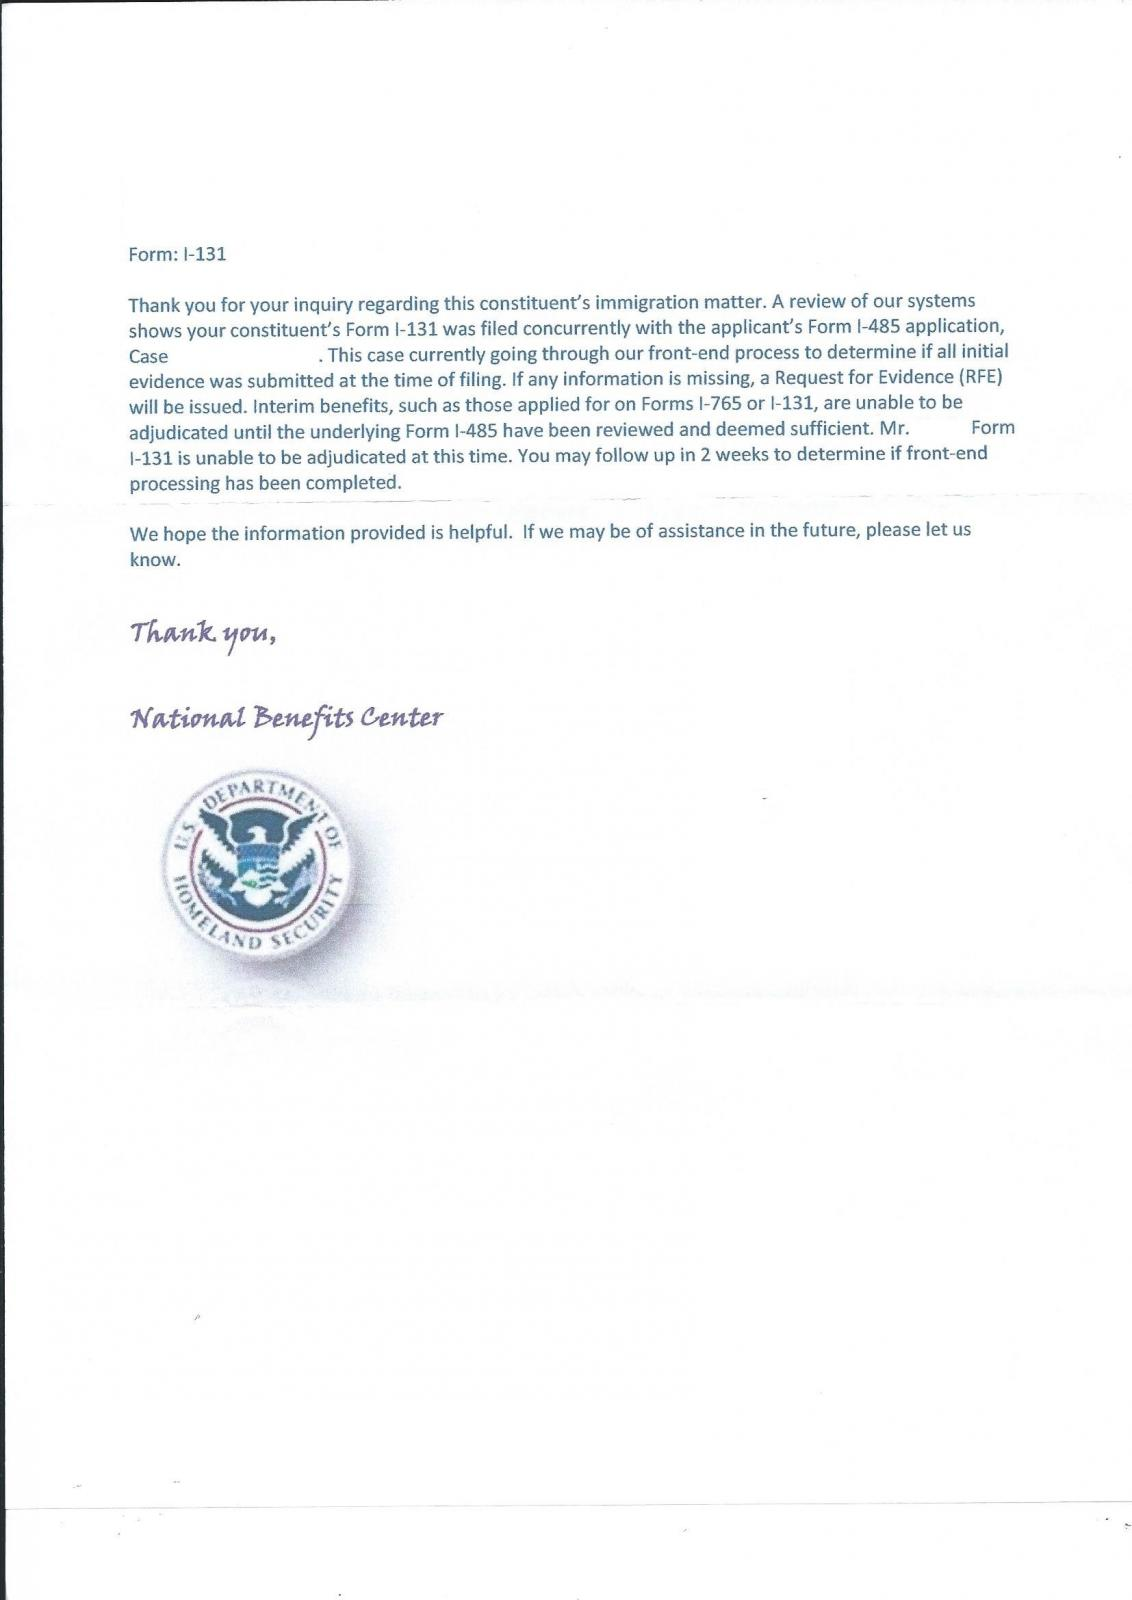 Contacted Congressman Regarding I-131...This is the response from ...